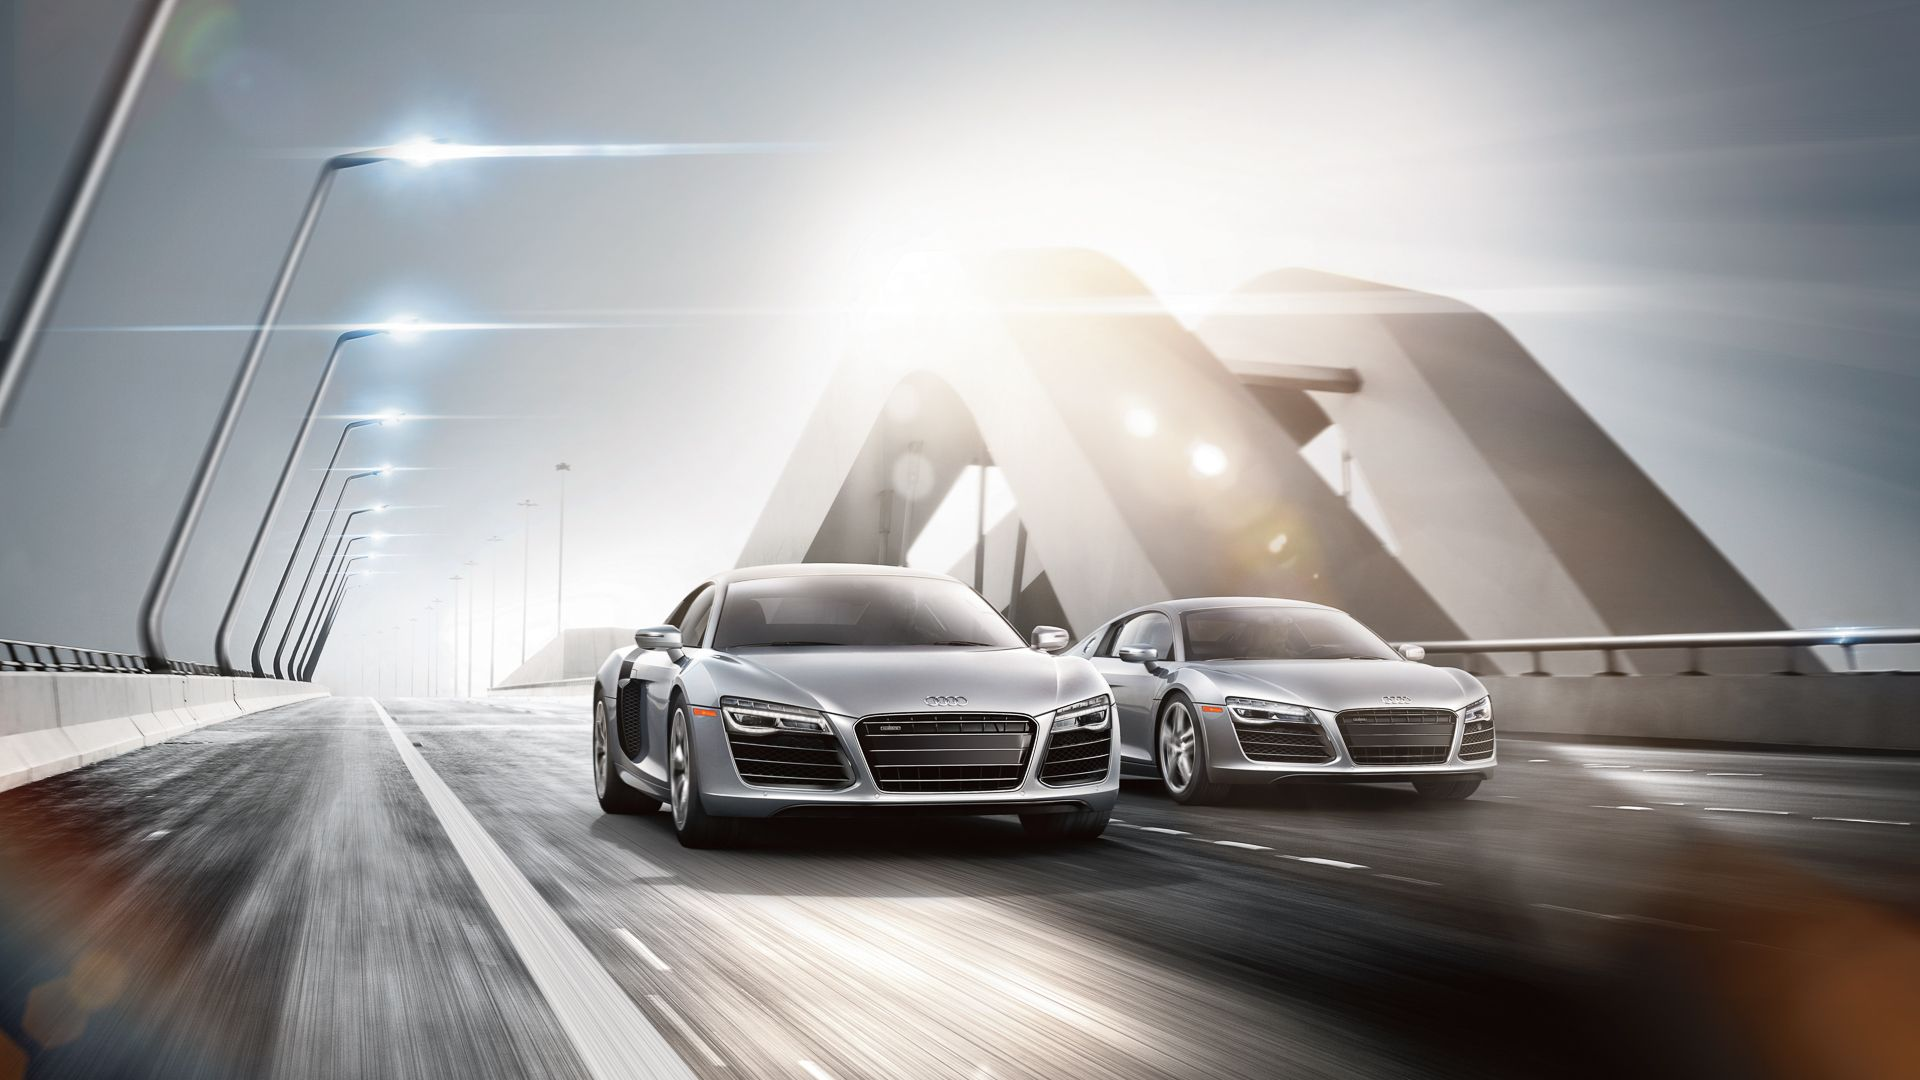 Awesome 2015 Audi Cars Speed City wallpaper cars 1920x1080